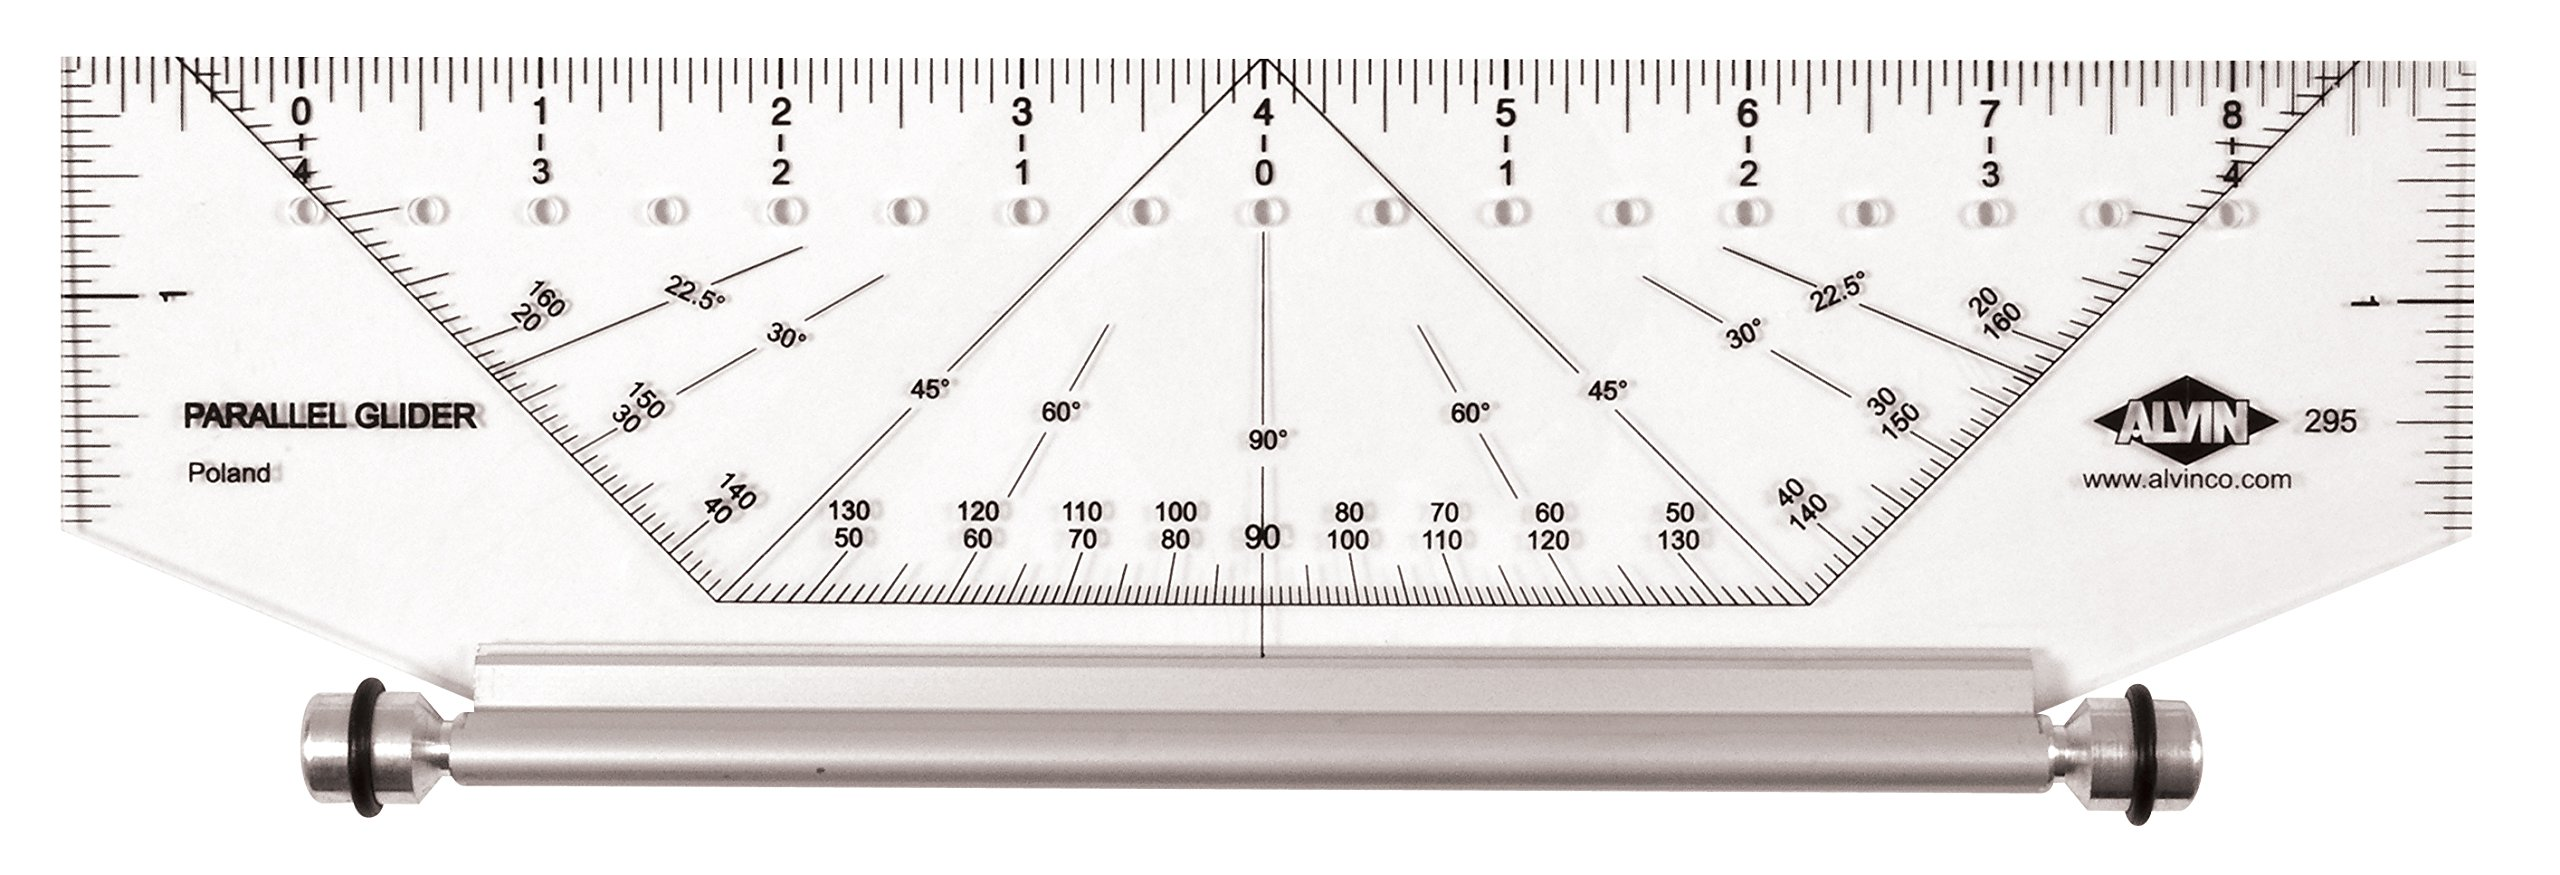 Alvin 295M Professional Parallel Glider Metric 10 inches